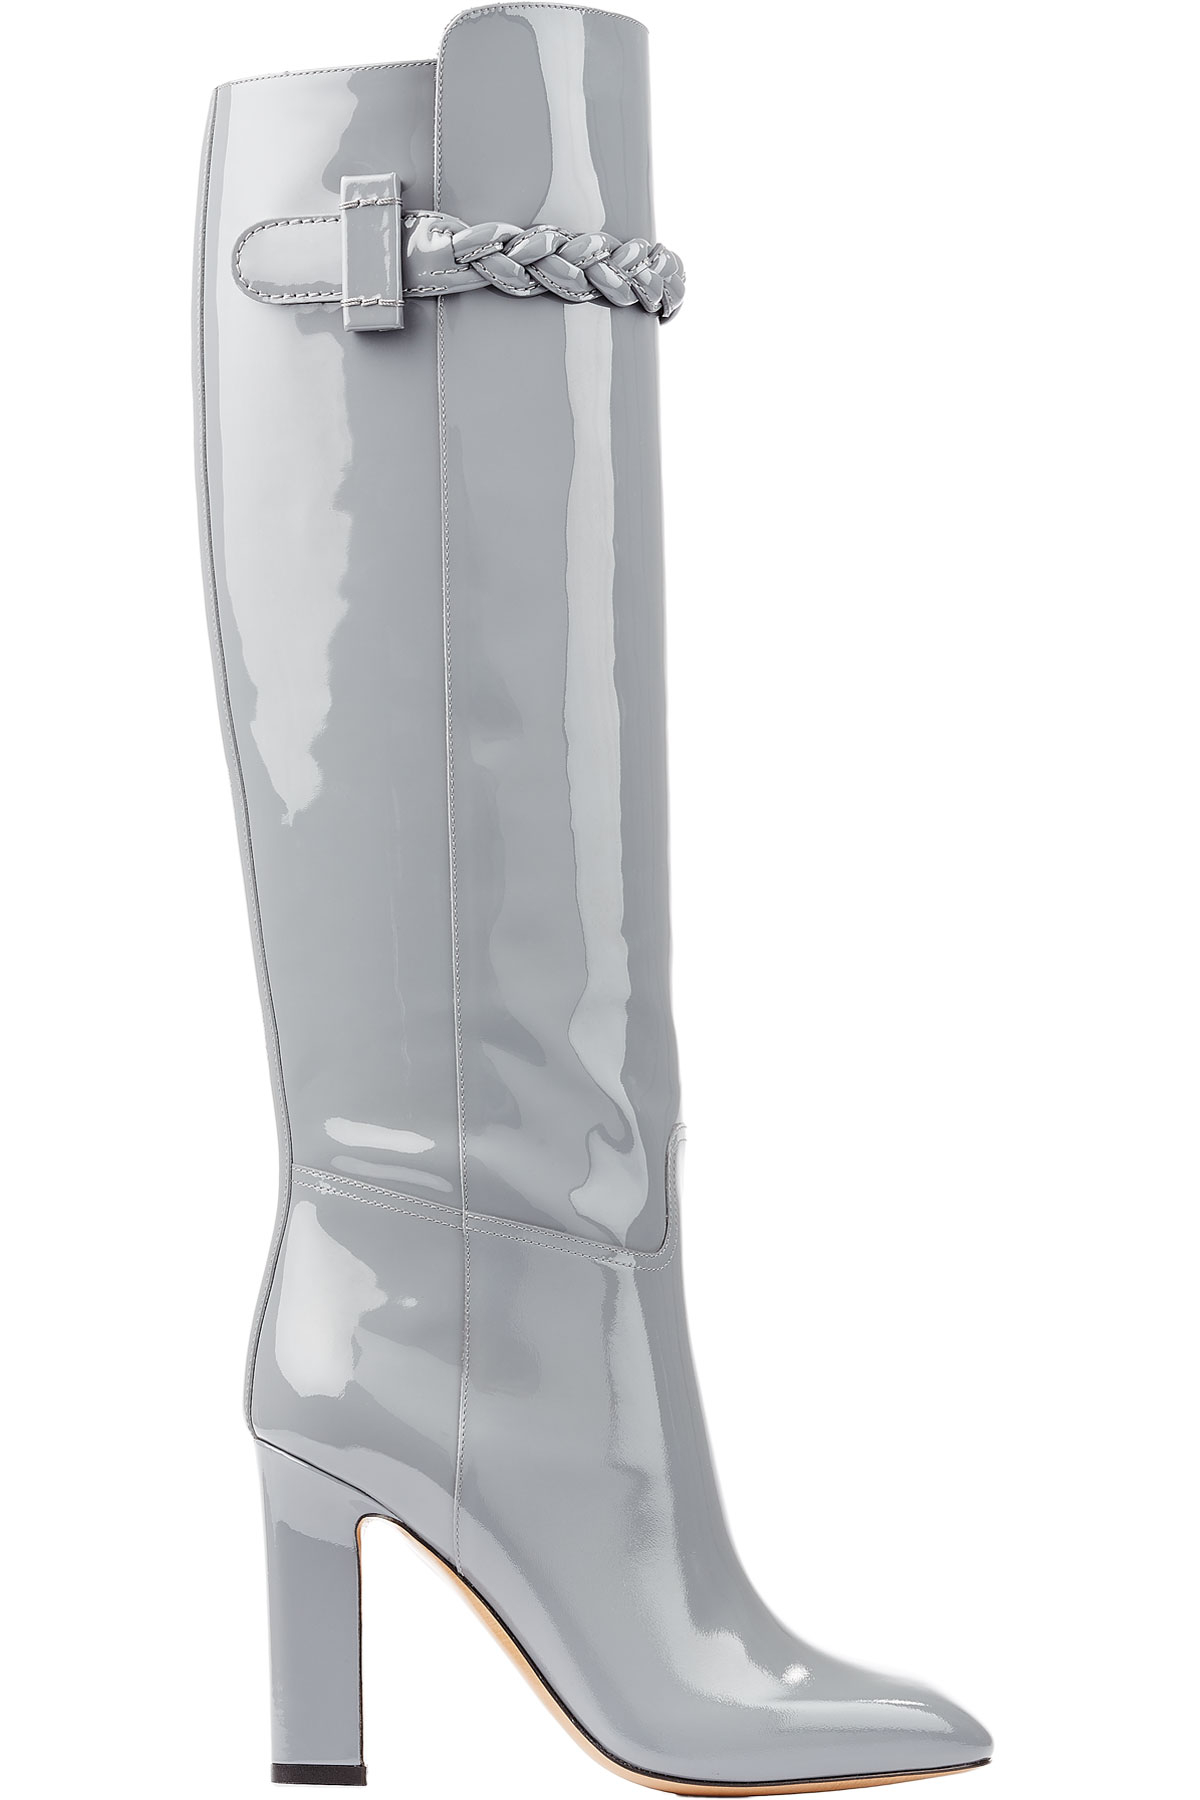 7941a384dea Valentino Tbc Knee-high Patent Leather Boot - Grey in Gray - Lyst